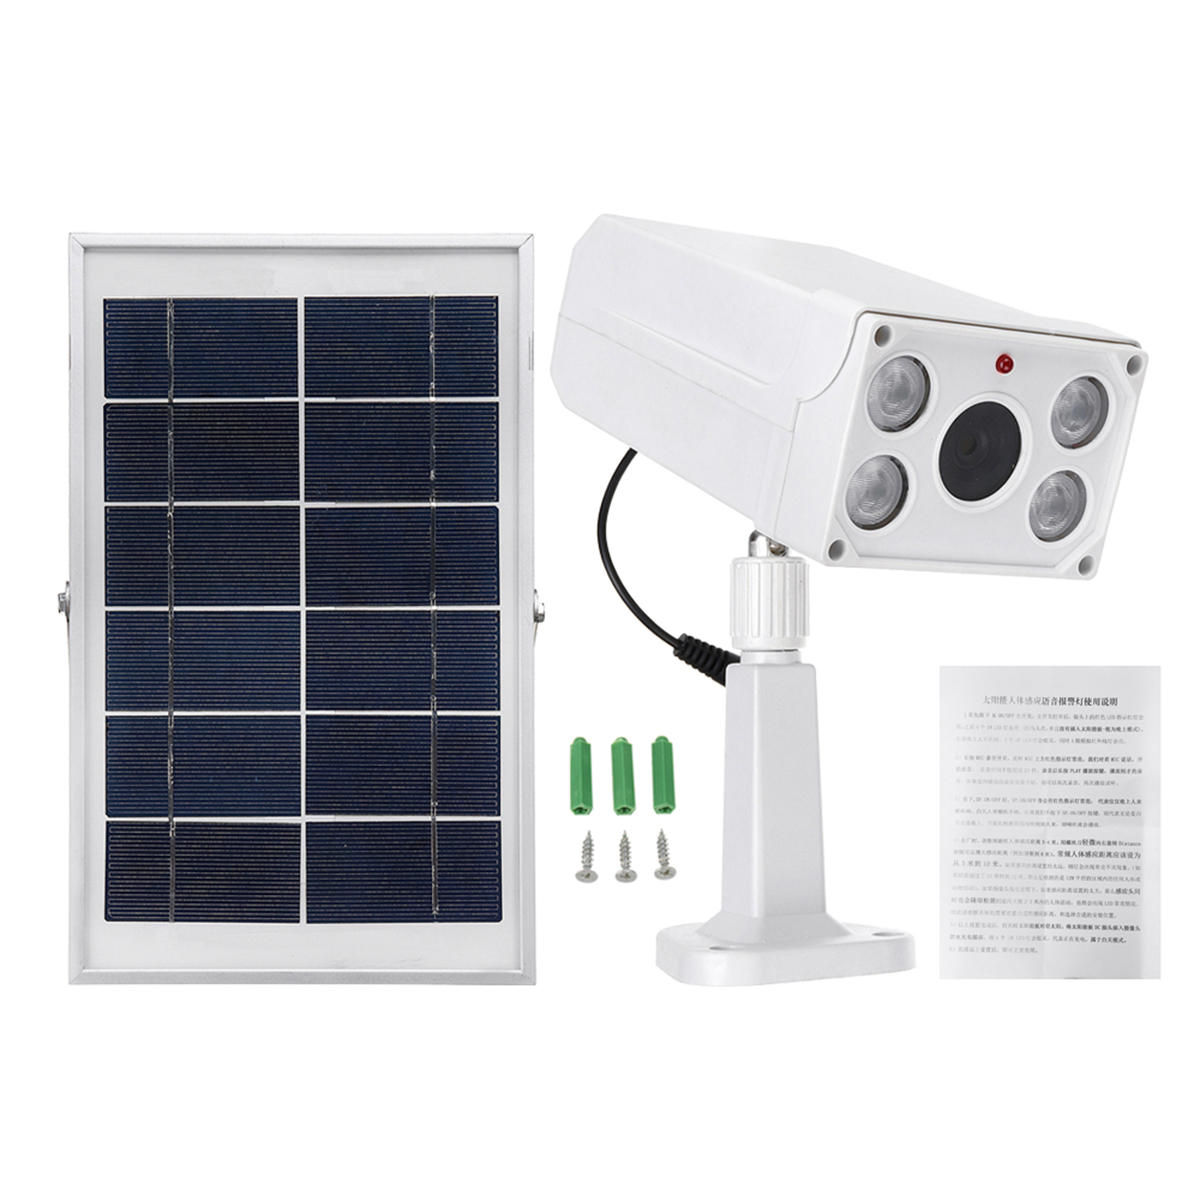 4W LED Motion Sensor Detector Solar Light IP65 Waterproof Security Alarm System Kit Voice Alarm with Solar Powered Human фото